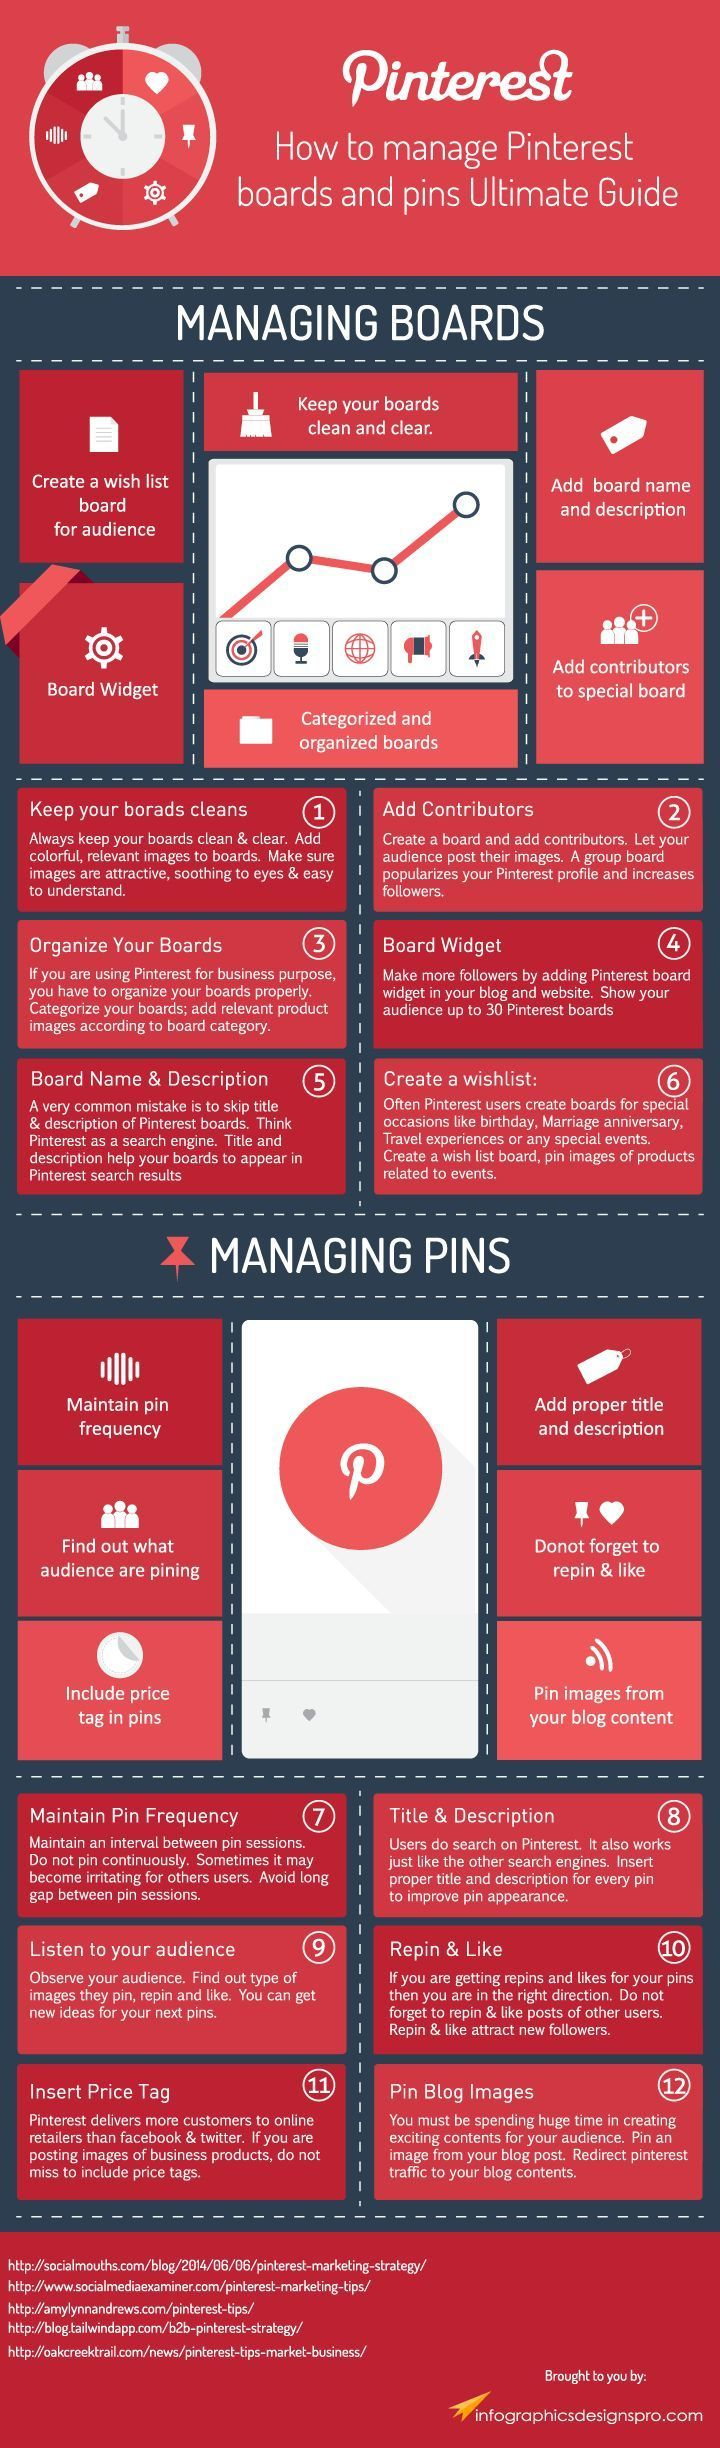 Here's some information on managing Pinterest boards and pins #socialmedia #infographic